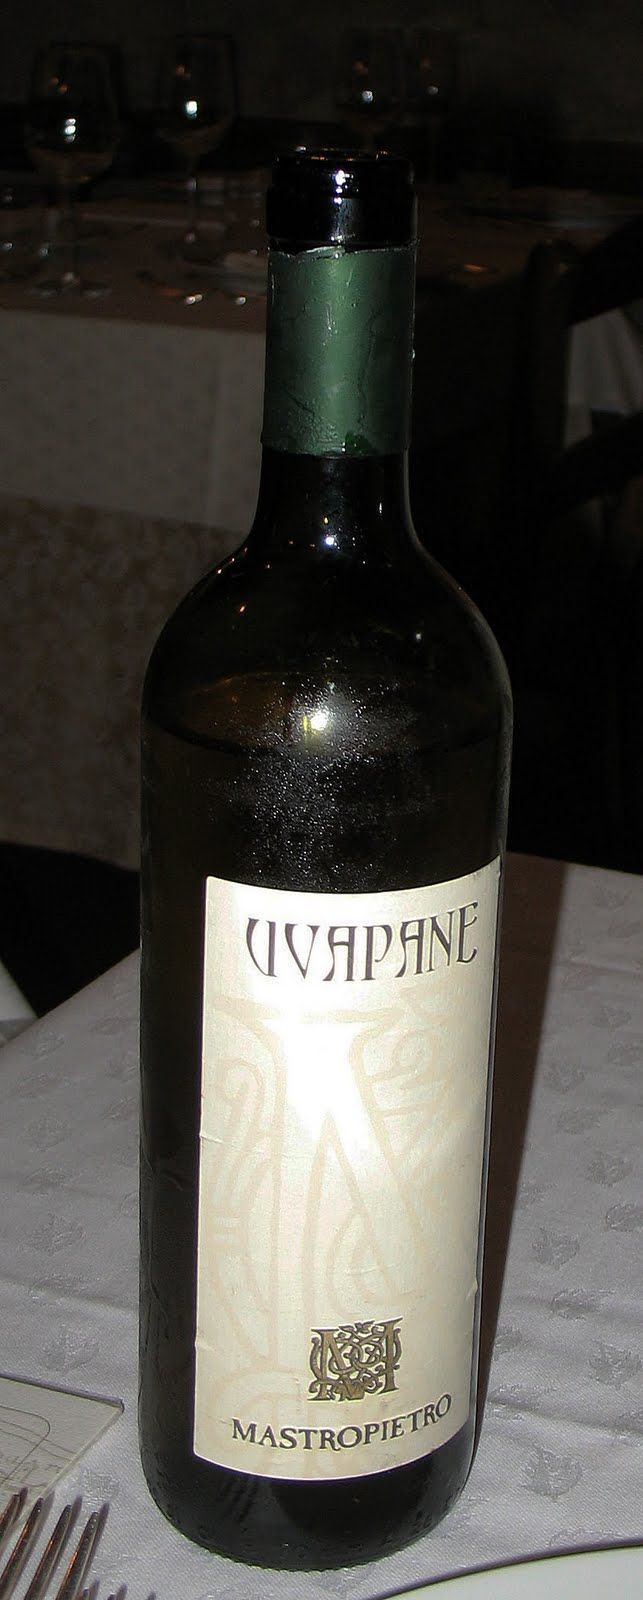 Uvapane White Wine - Excellent